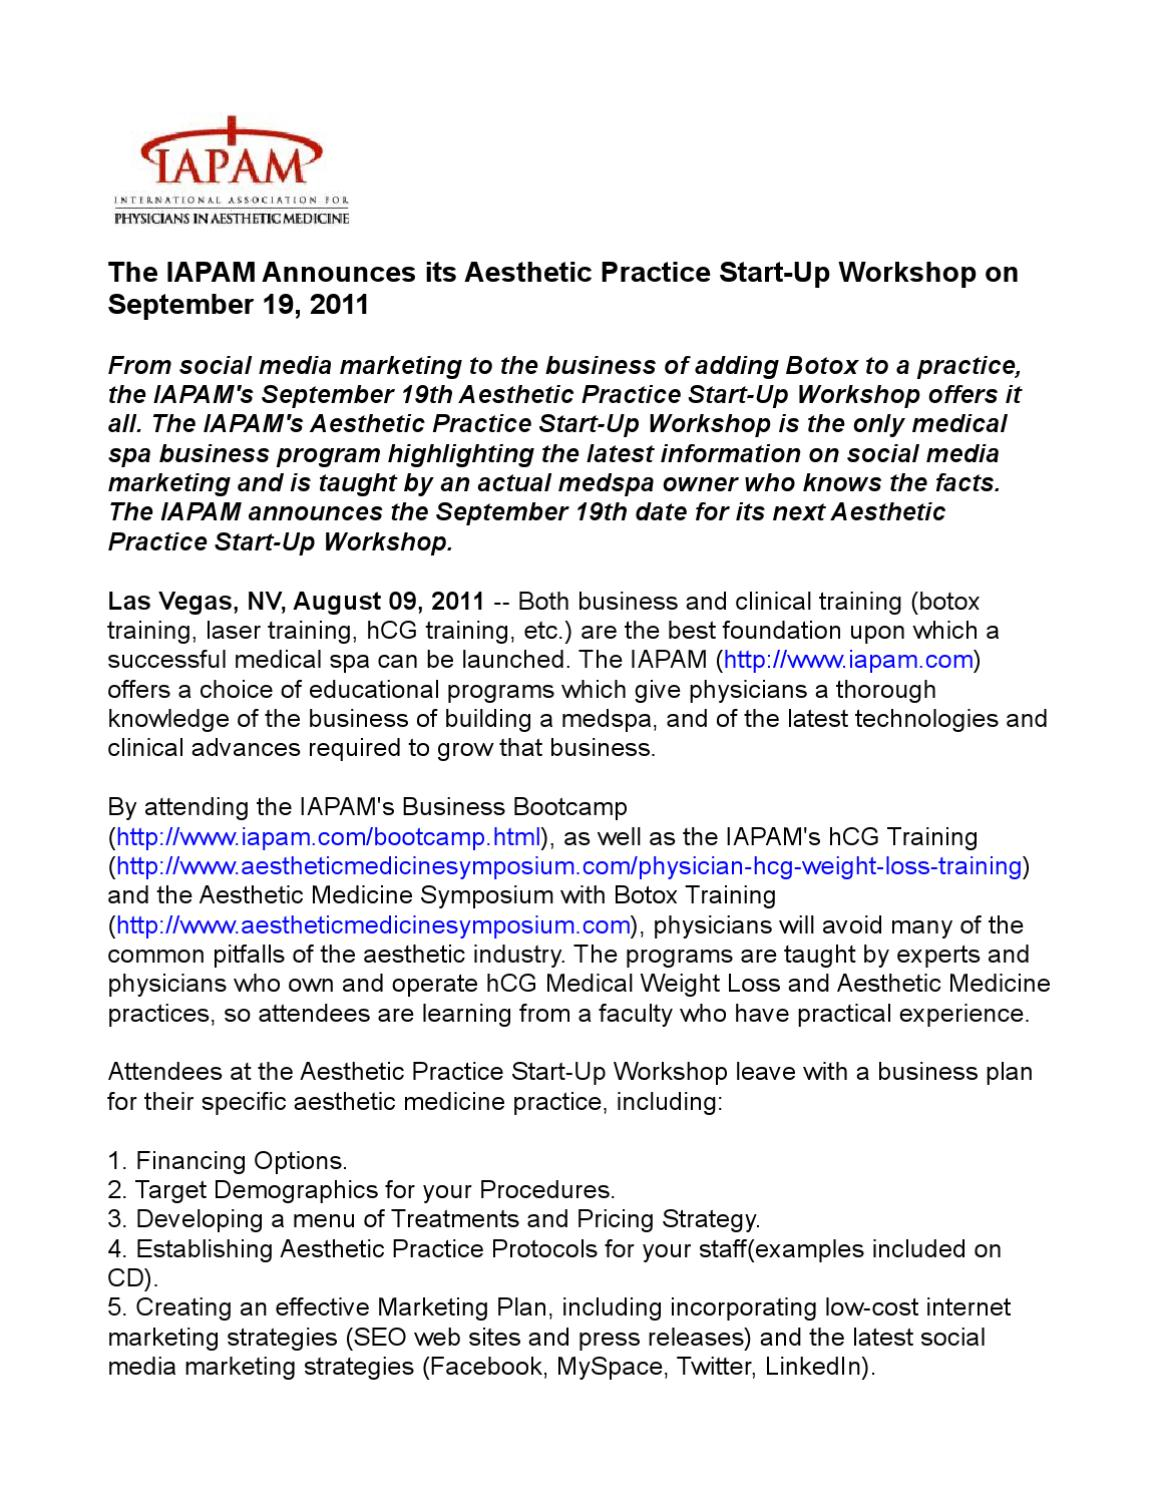 The IAPAM Announces its Aesthetic Practice Start-Up Workshop